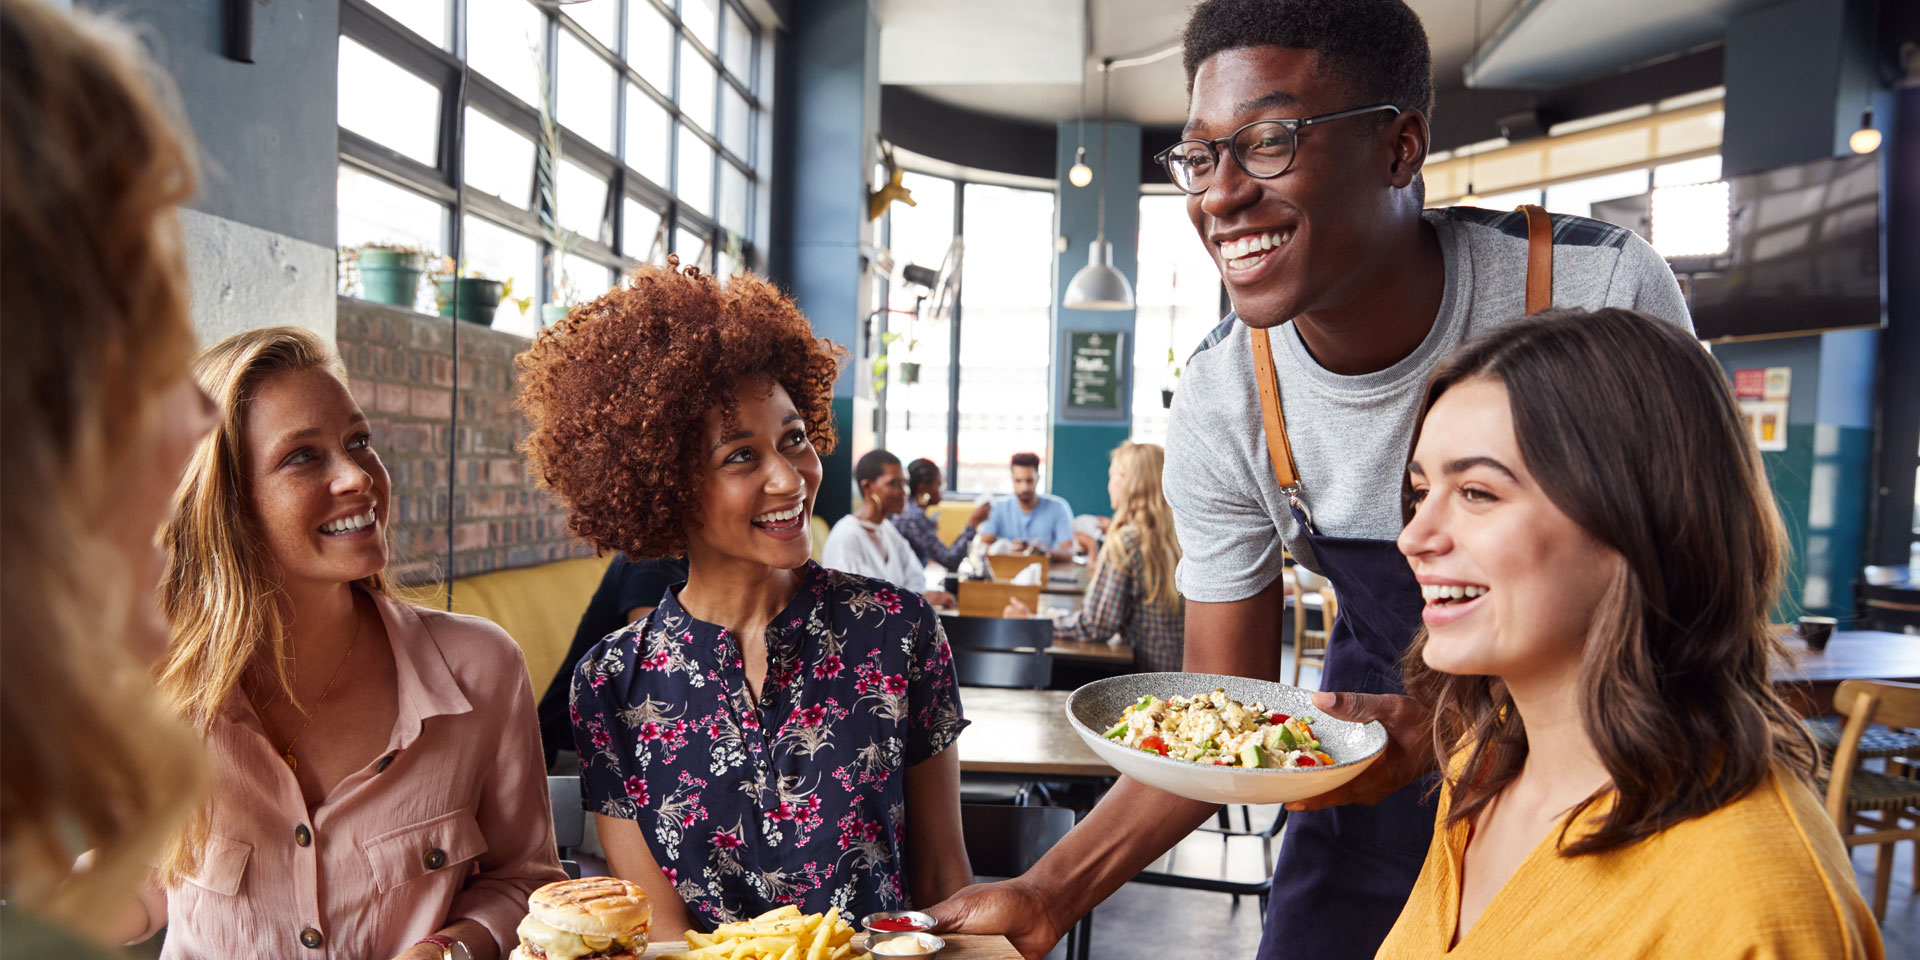 5 technologies that will make your restaurant staff happier and more productive